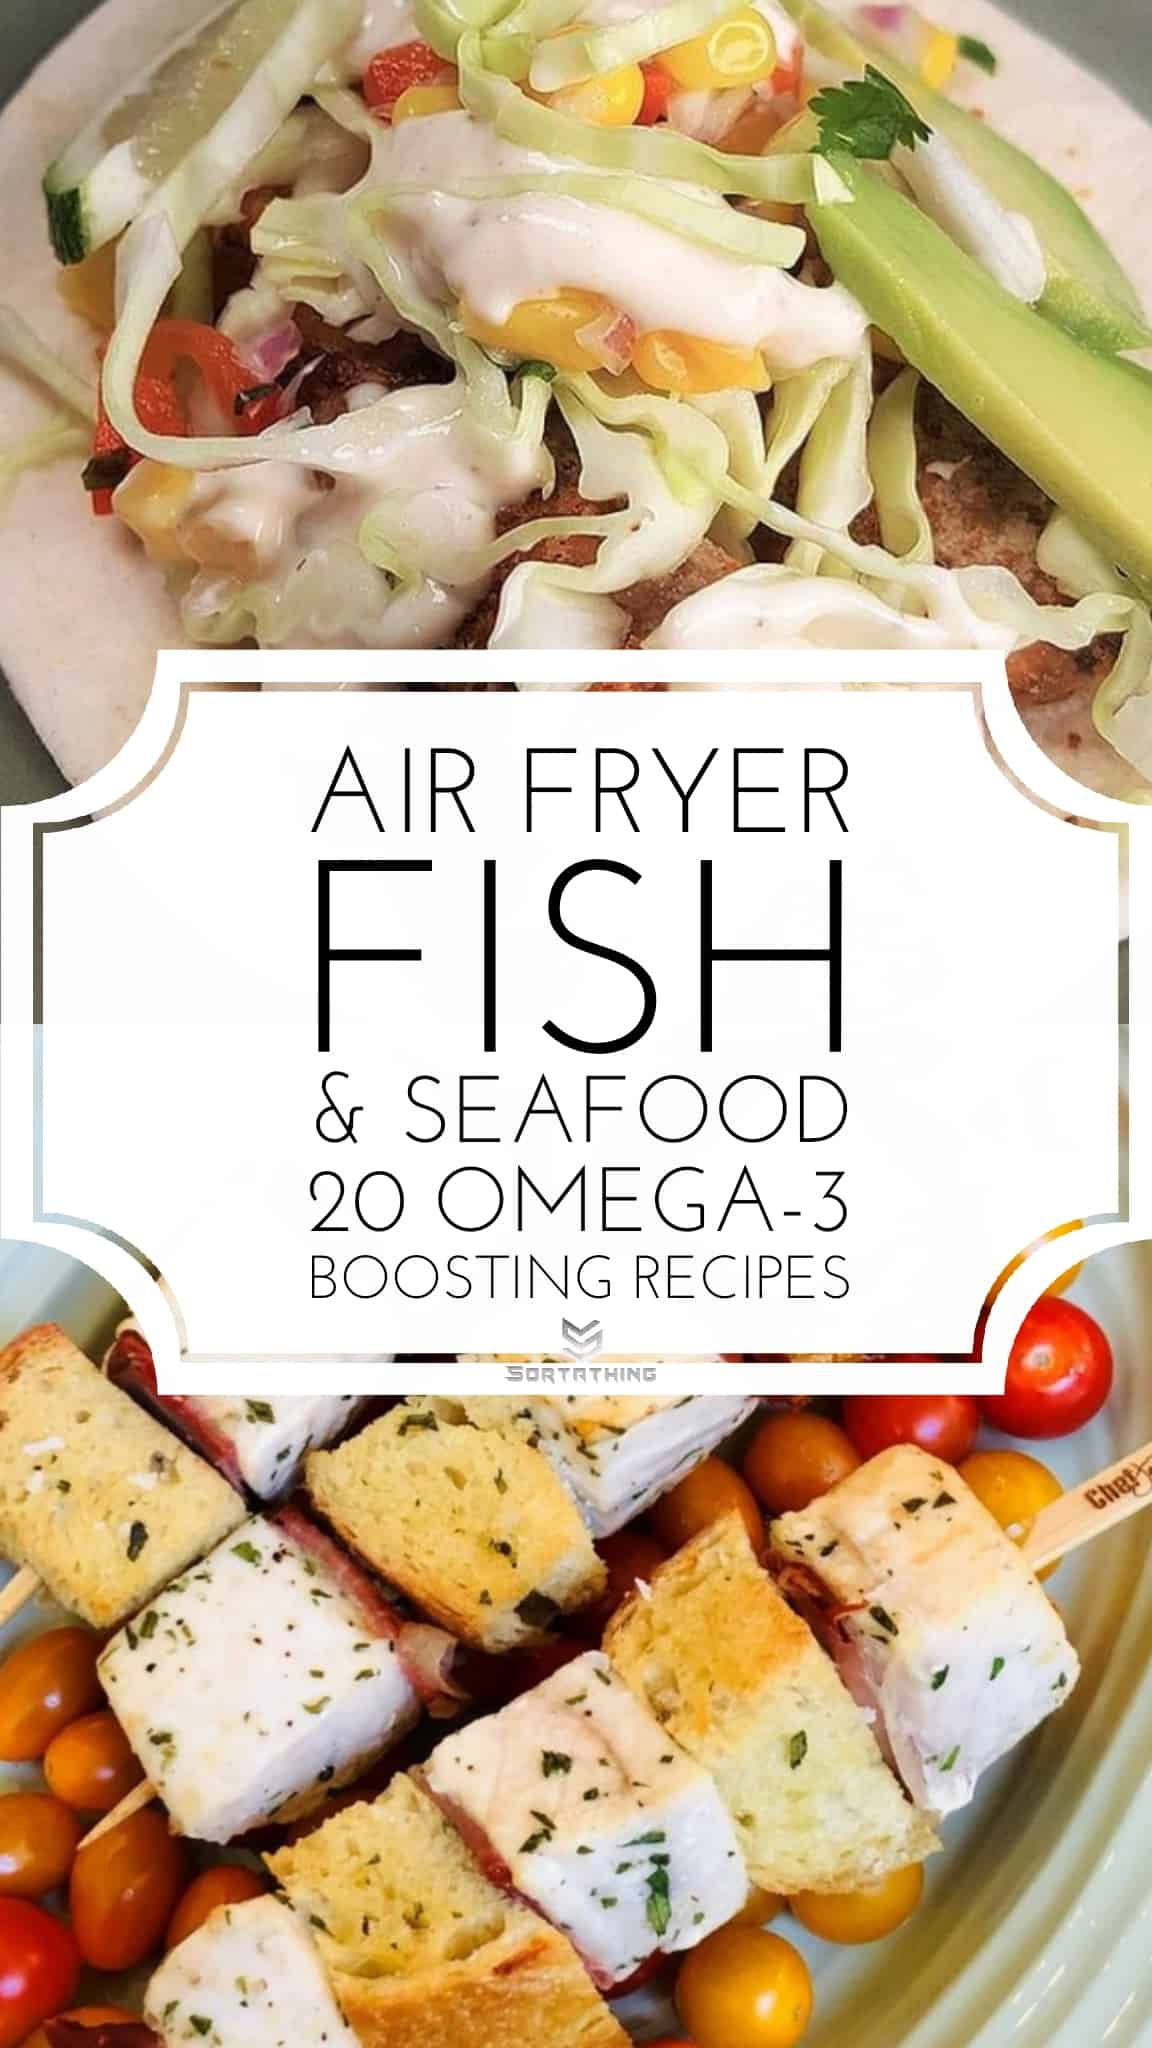 Air Fryer Baja Fish Tacos & Air Fryer Swordfish Kabobs